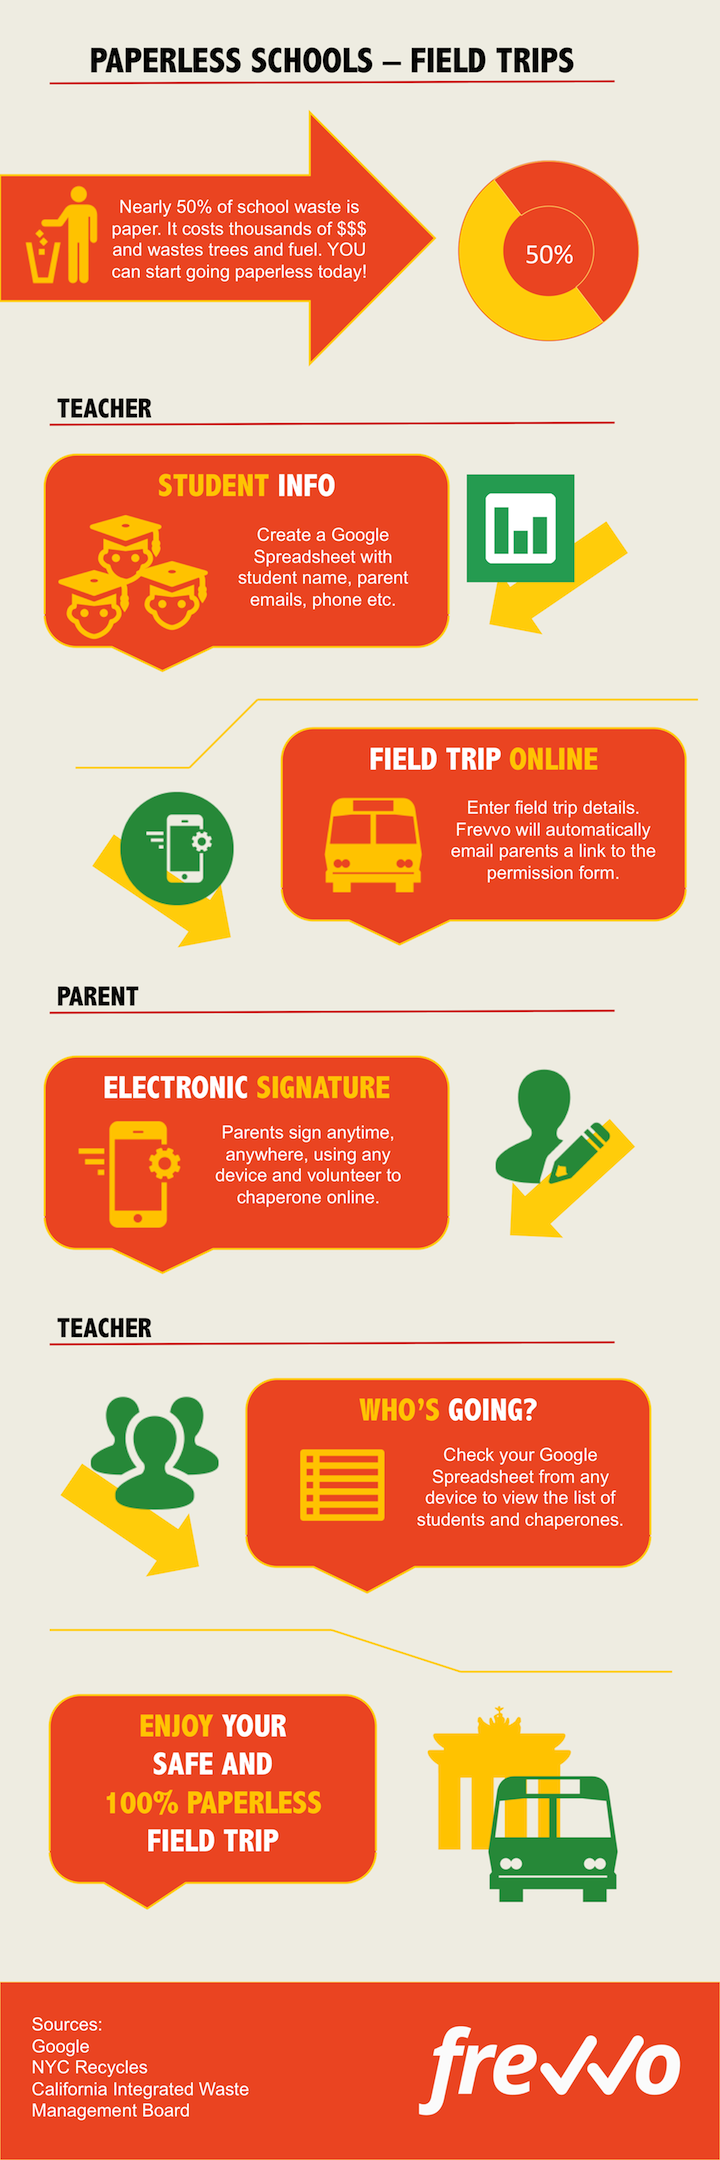 Paperless Field Trip infographic